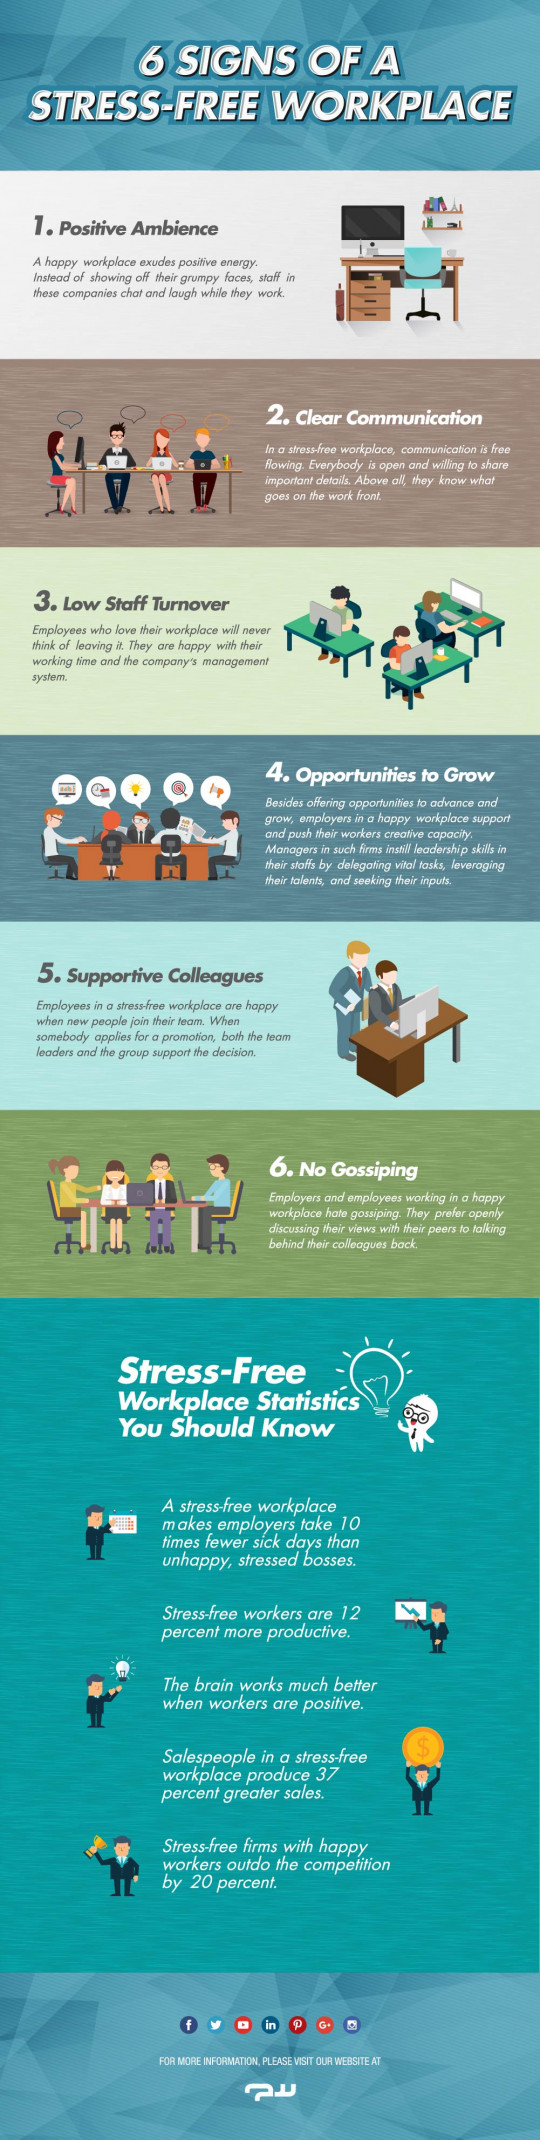 6 Awesome Signs of a Stress-Free Workplace [Infographic]